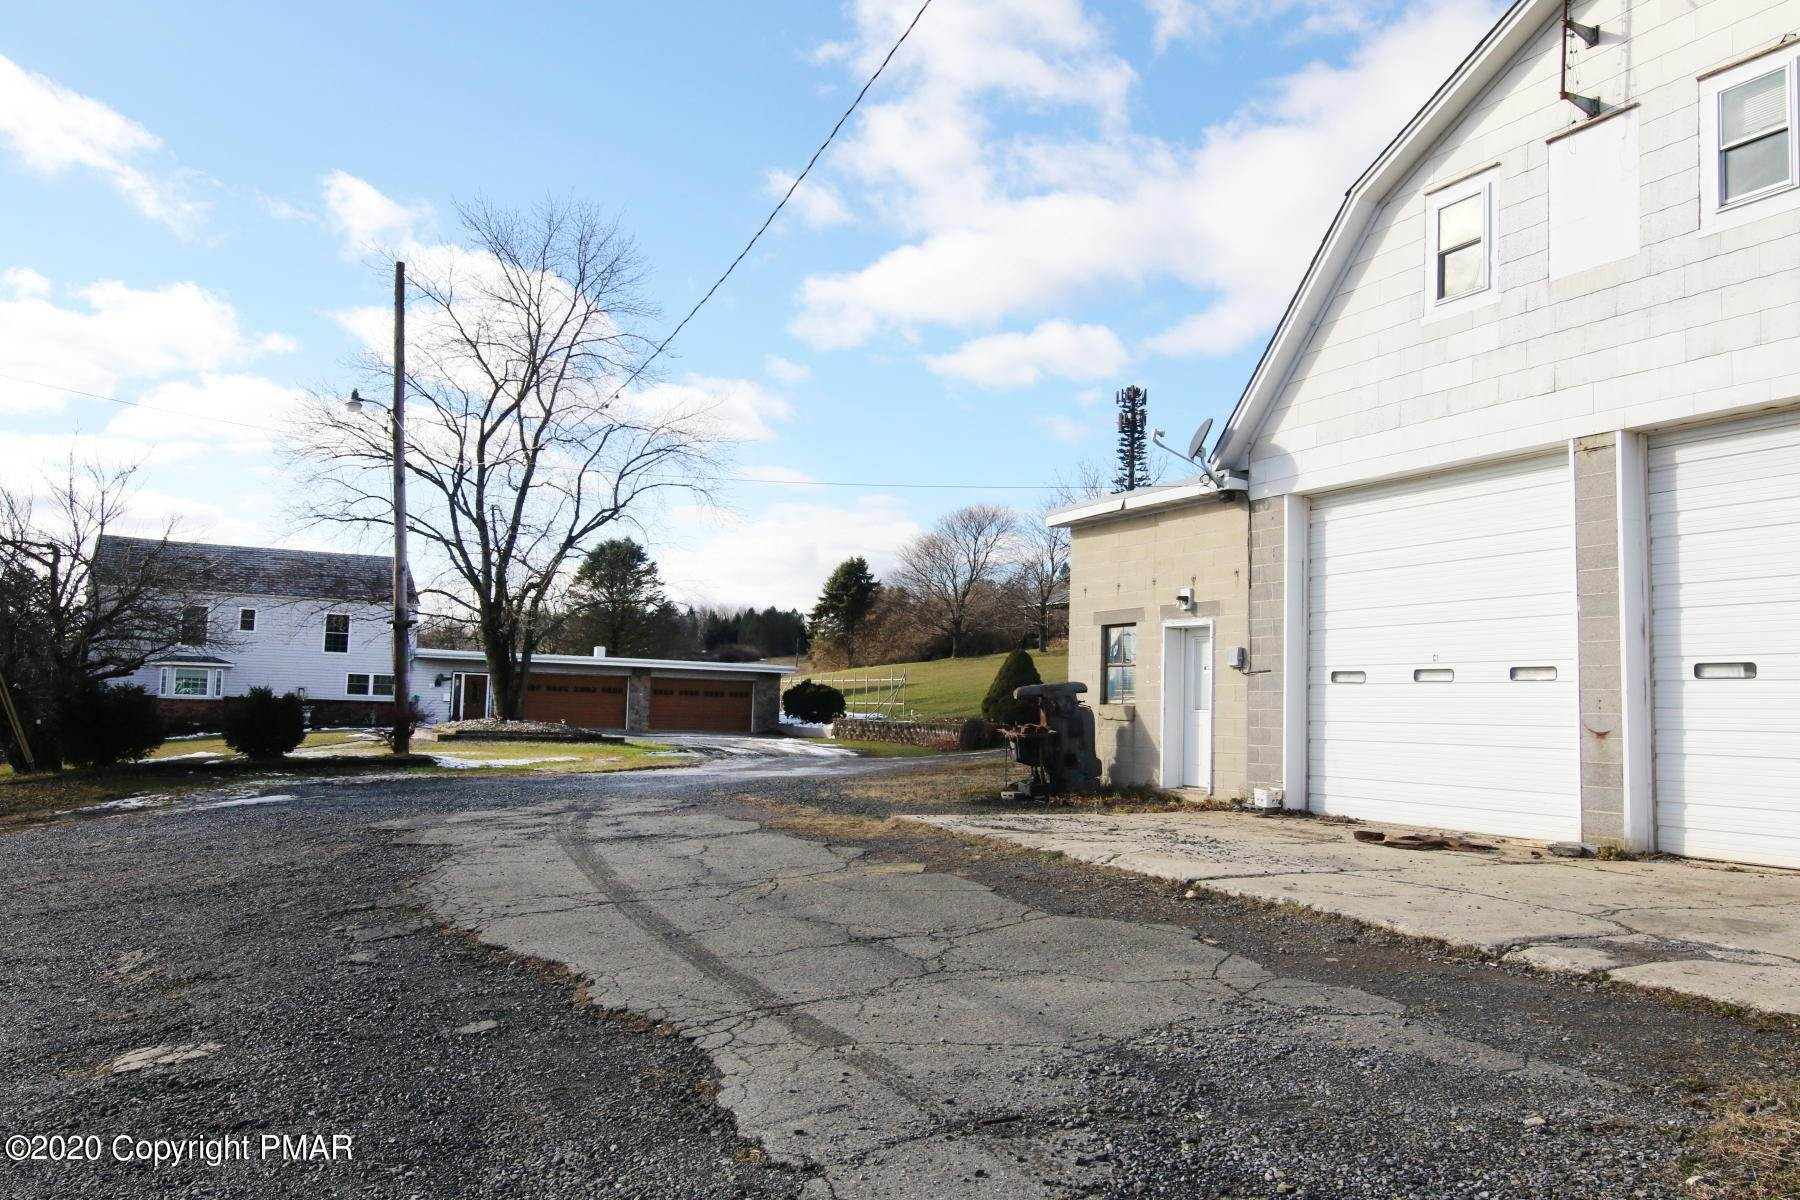 2. Commercial for Sale at 210 Spruce Hollow Rd Palmerton, Pennsylvania 18071 United States